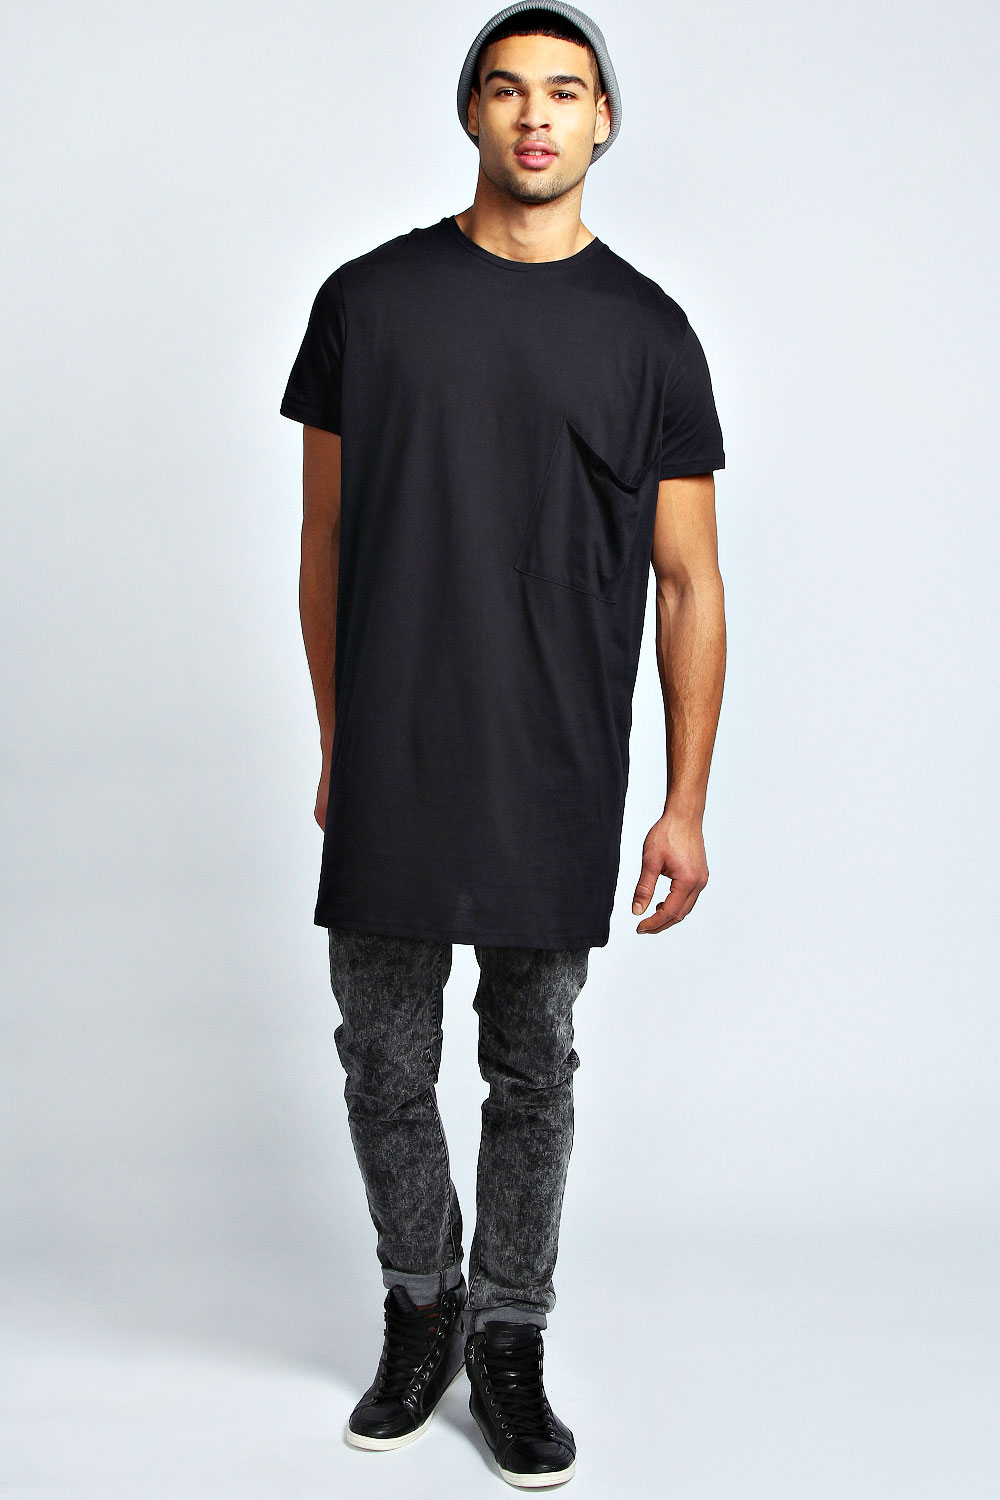 Discover long t shirts with ASOS. From men's long hoodies, printed tees, long sleeve t shirts and crew neck sweatshirts for men. Shop today from ASOS. ASOS DESIGN oversized t-shirt with half sleeve in scuba fabric with pocket in black. $ ASOS DESIGN oversized t-shirt with half sleeve in scuba fabric with pocket in beige.